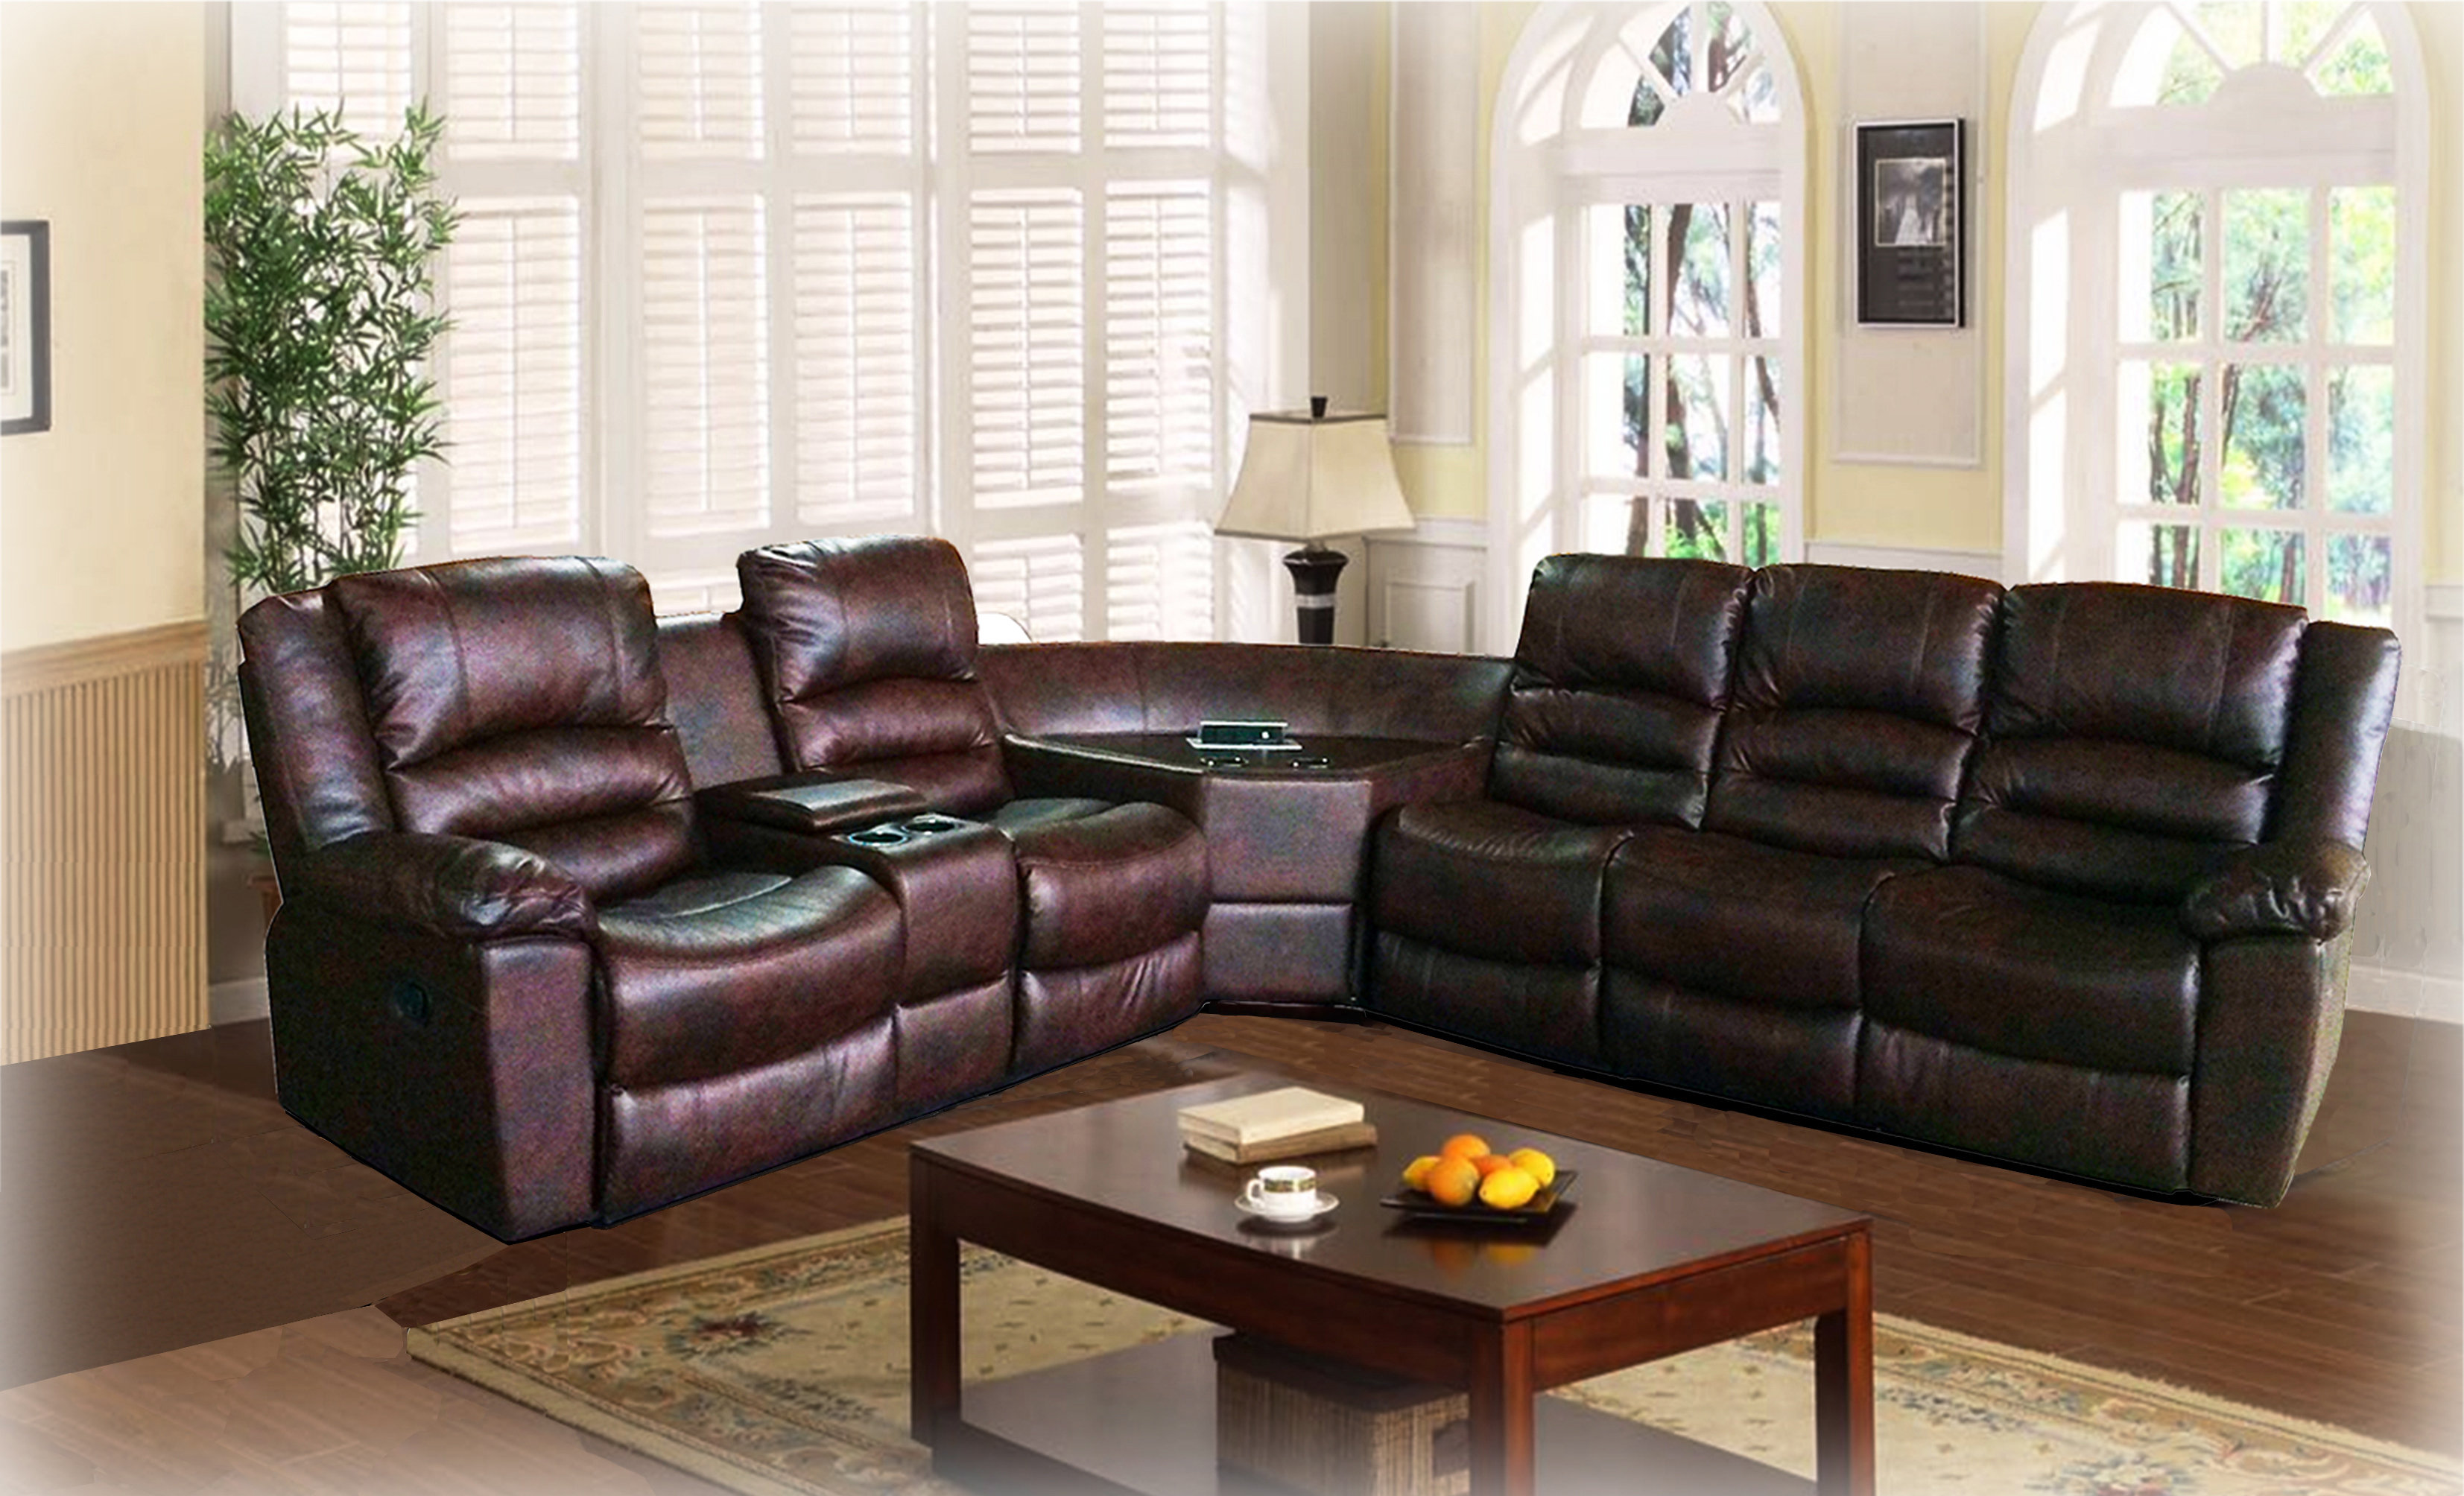 Sofa Liquidation Montreal Montreal Furniture Liquidation Living Room Furniture Sectional